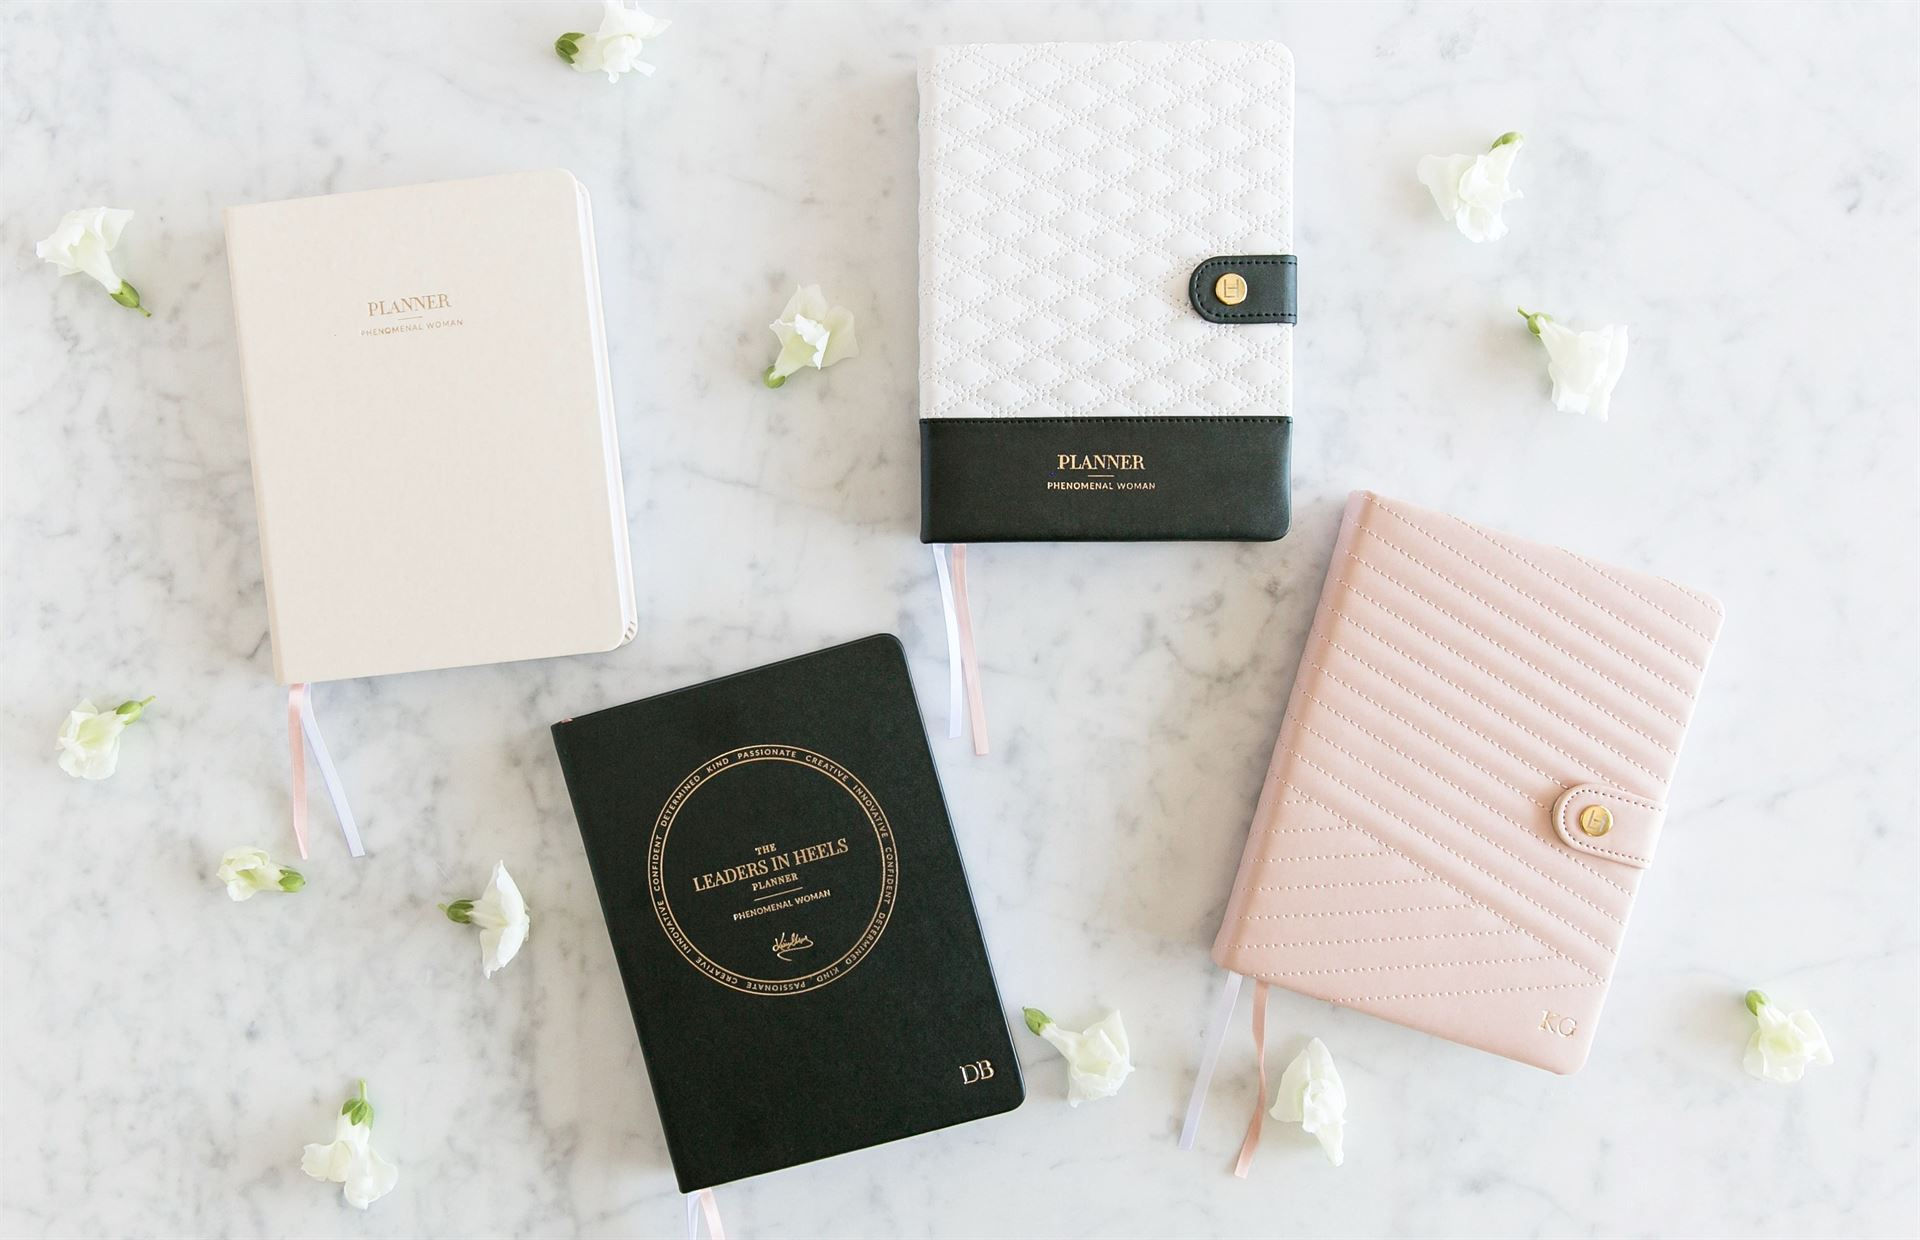 The Leaders in Heels Phenomenal Woman Planners